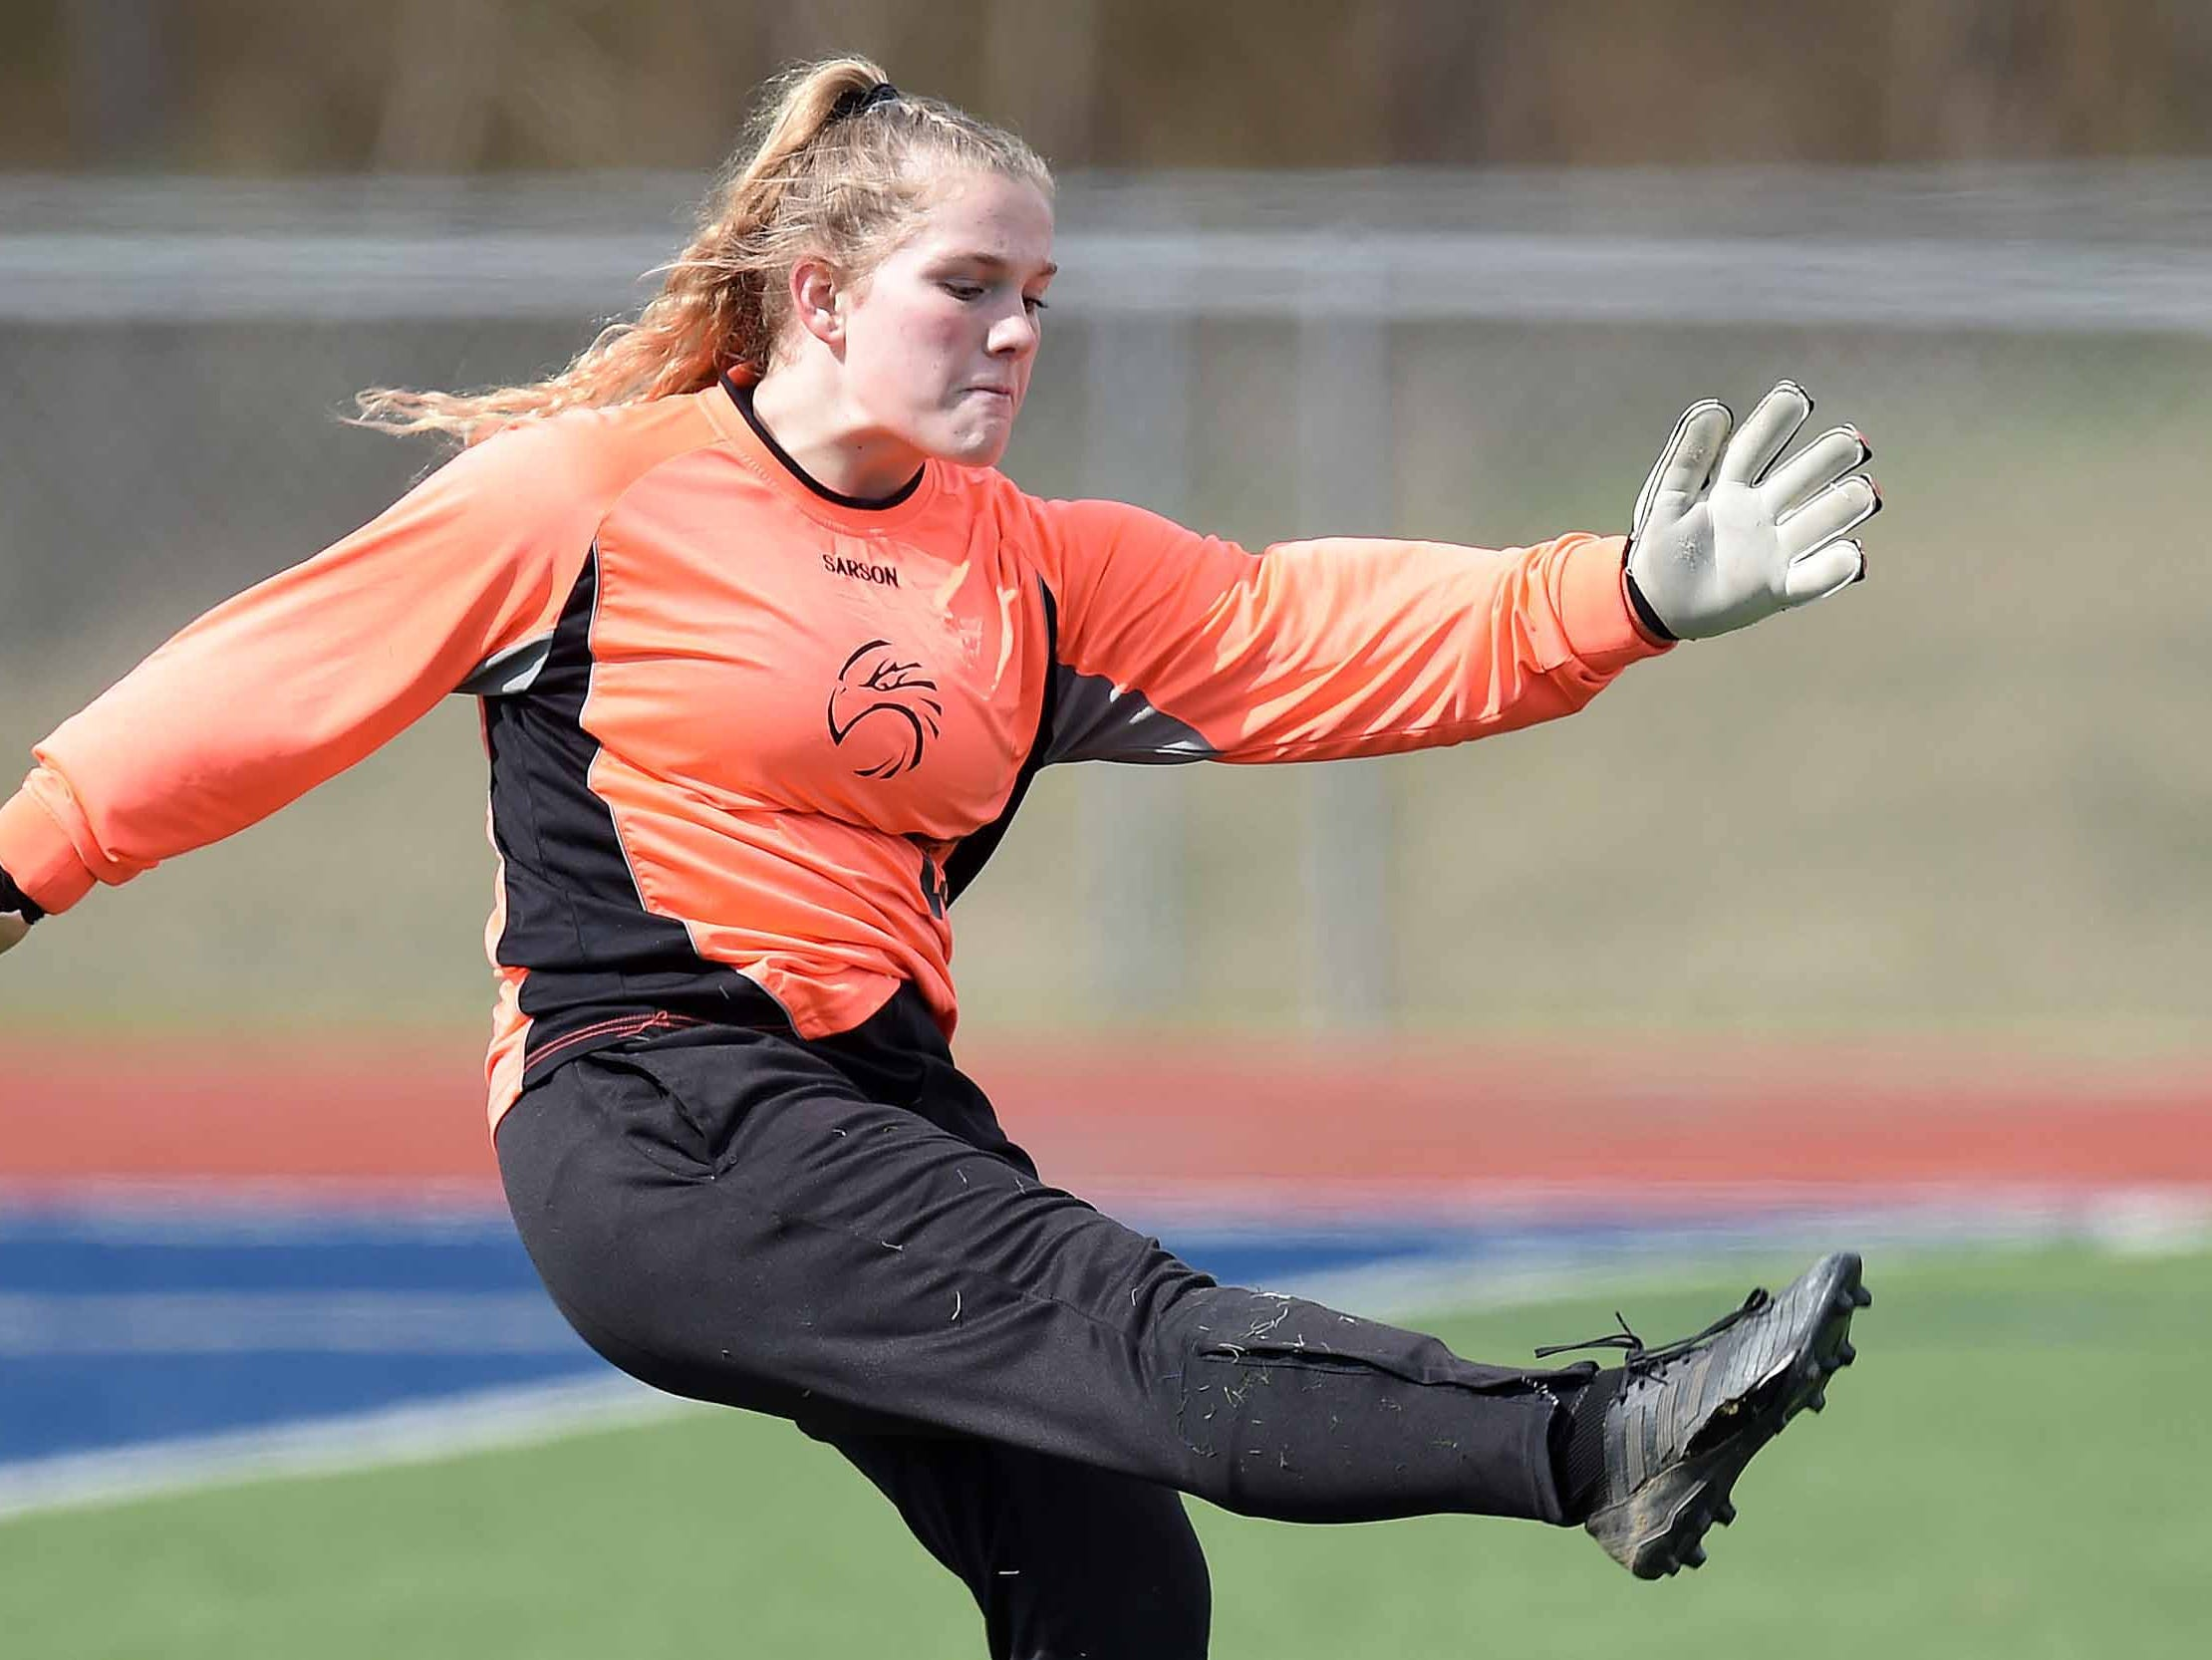 Florence goalkeeper Olivia Burnham (15) punts against West Lauderdale in the Class 4A state championship in the MHSAA BlueCross Blue Shield of Mississippi Soccer Classic on Saturday, February 9, 2019, at Ridgeland High School in Ridgeland, Miss.